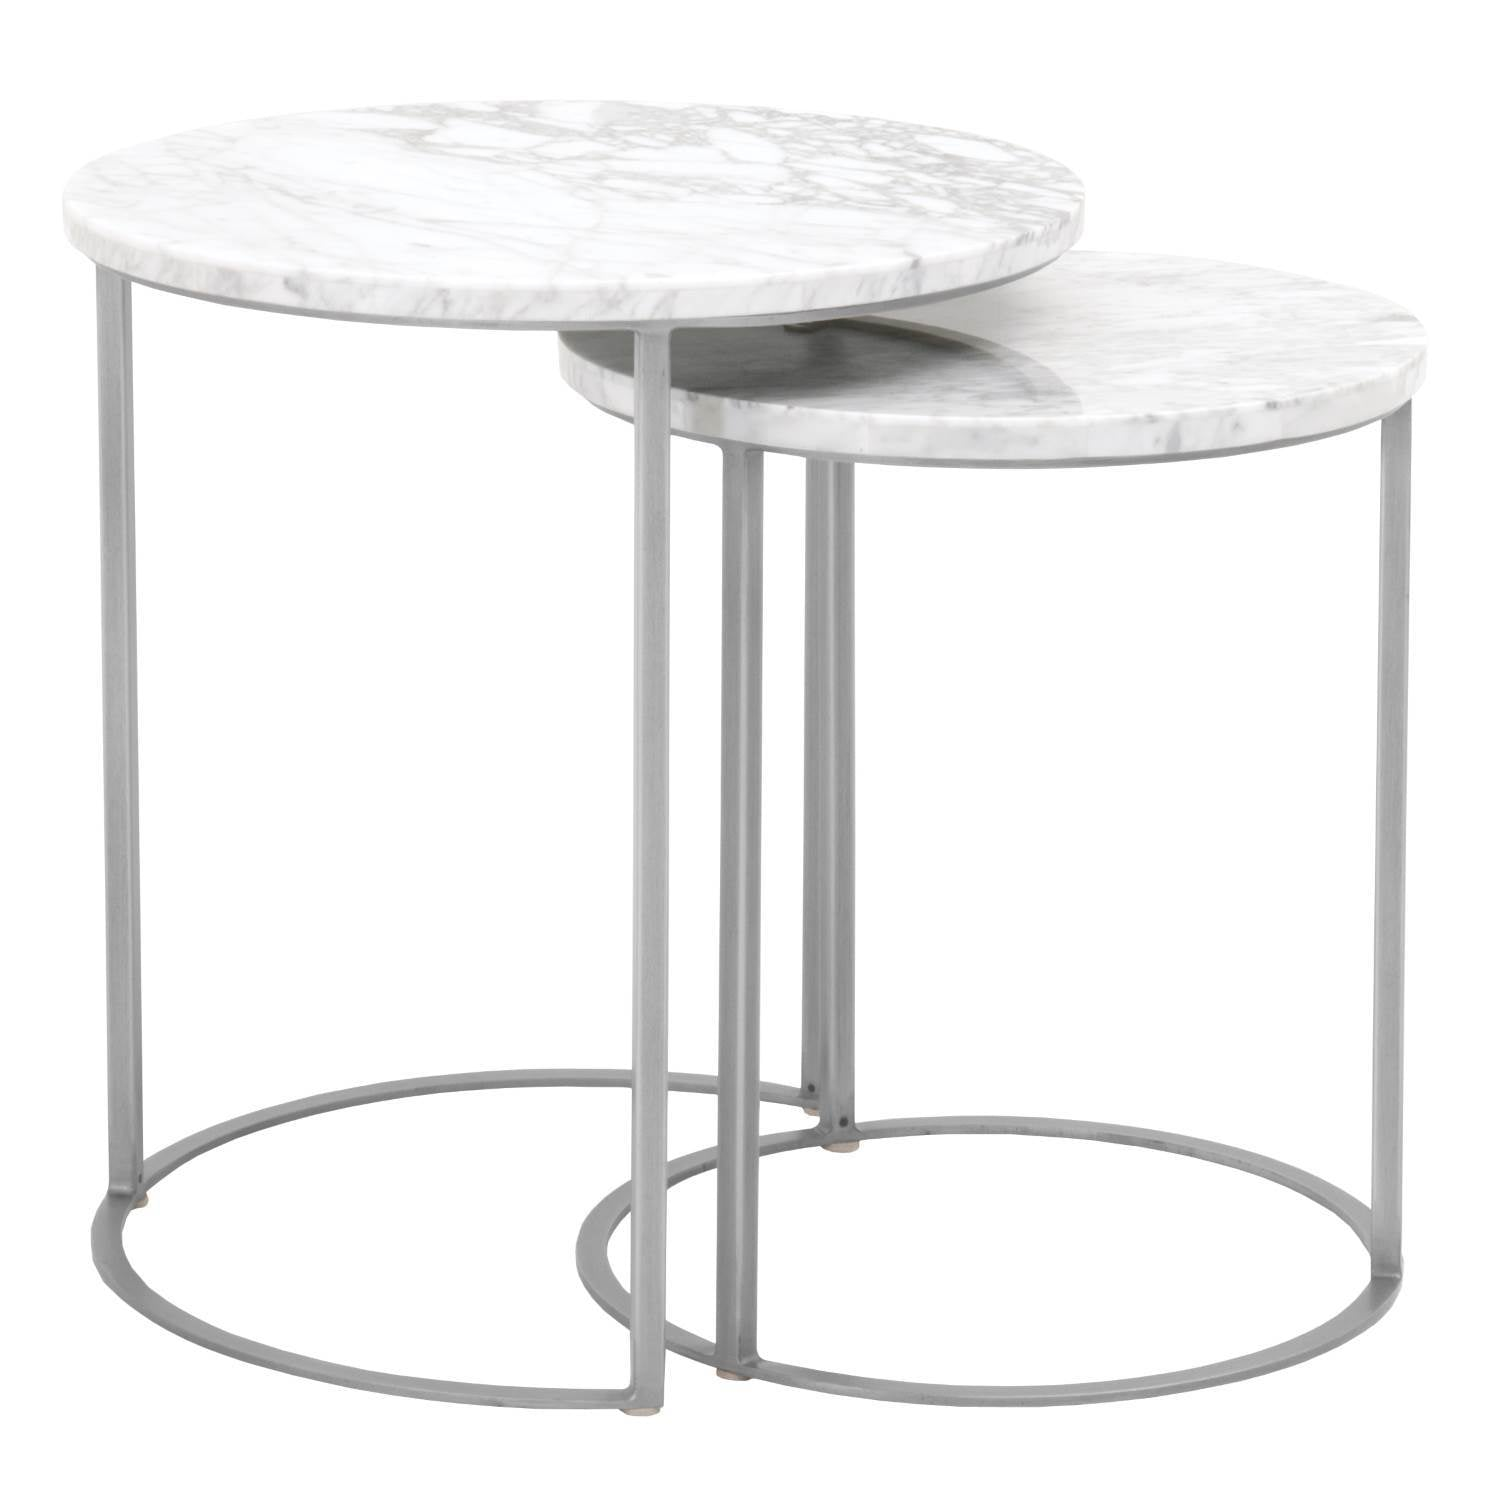 Carrera Round Nesting Accent Table in White Carrera Marble,  Brushed Stainless Steel